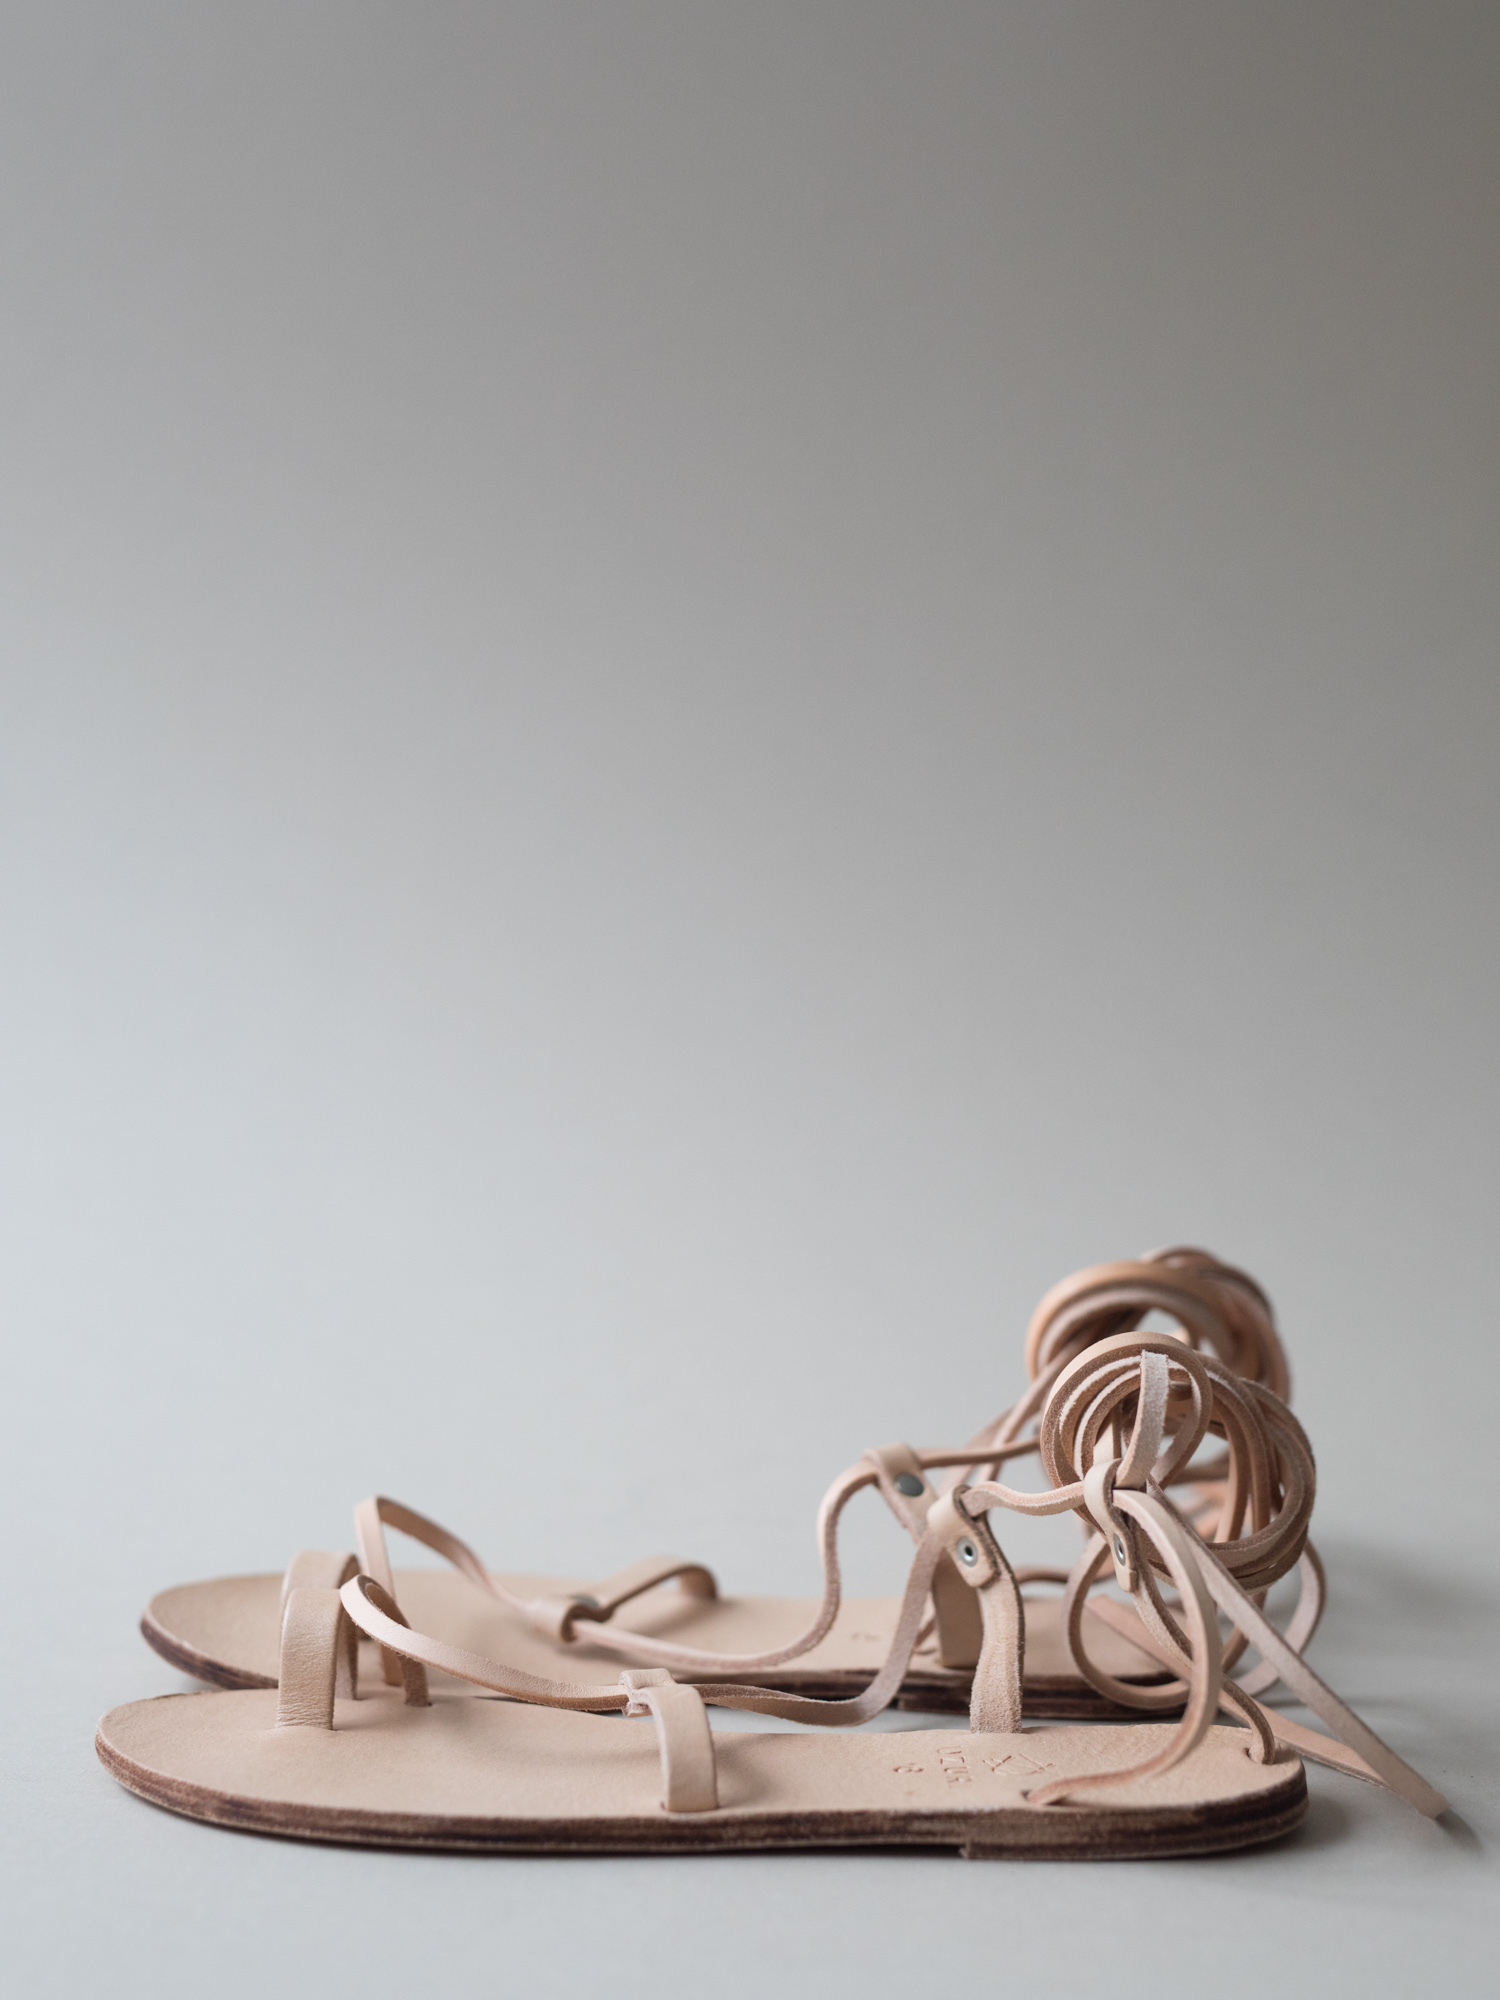 Delicate, yet diverse & just as durable as the MOJA or FUNDO, these all-leather sandals are the perfect companion to breezy summer skirts or sun drenched & sand filled beach days. The simplicity of the design called for an unadorned colour palette of vegetable tanned leather. 